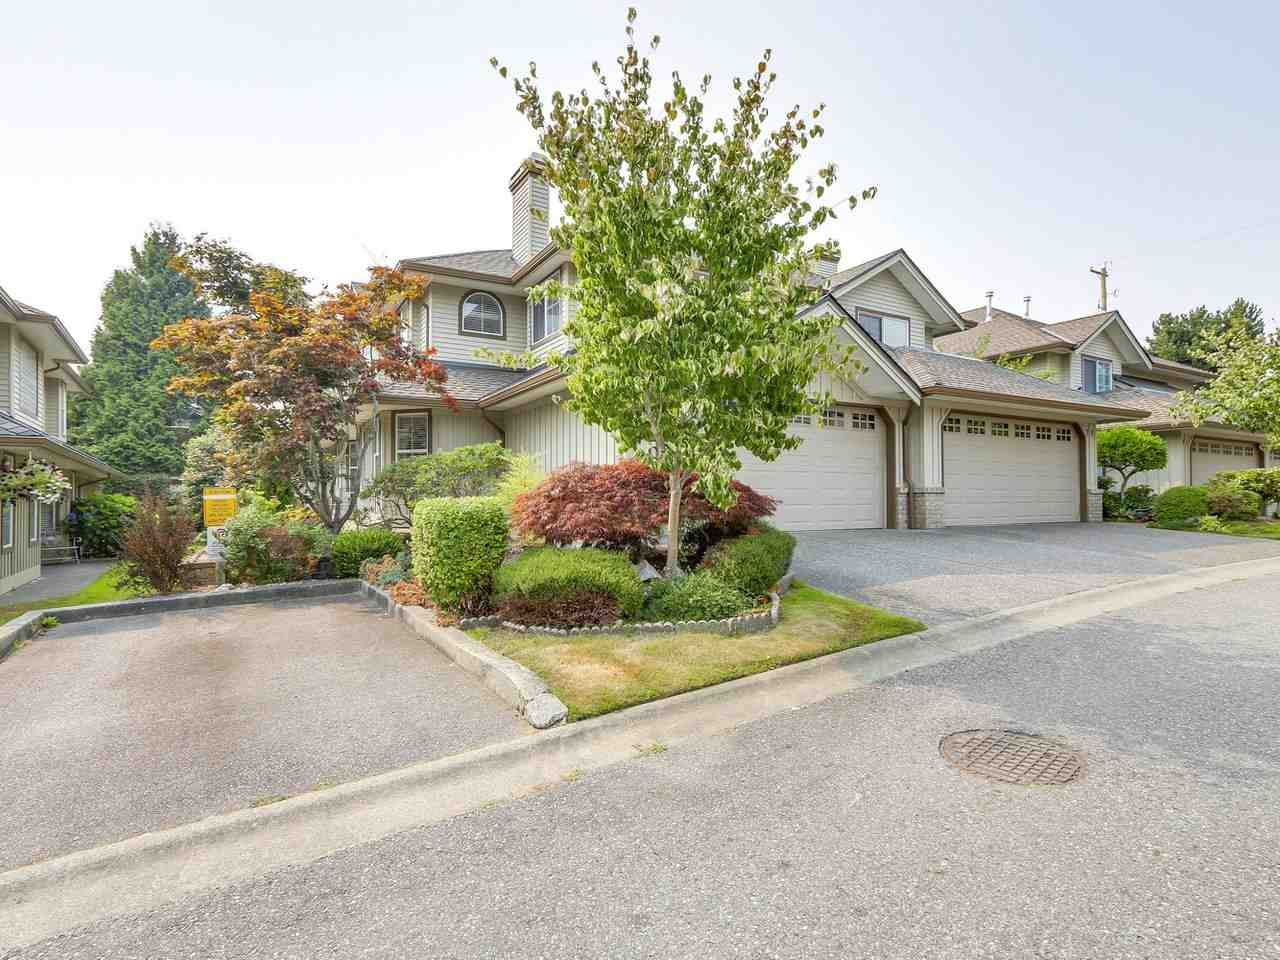 Main Photo: 69 15860 82 Avenue in Surrey: Fleetwood Tynehead Townhouse for sale : MLS®# R2195718